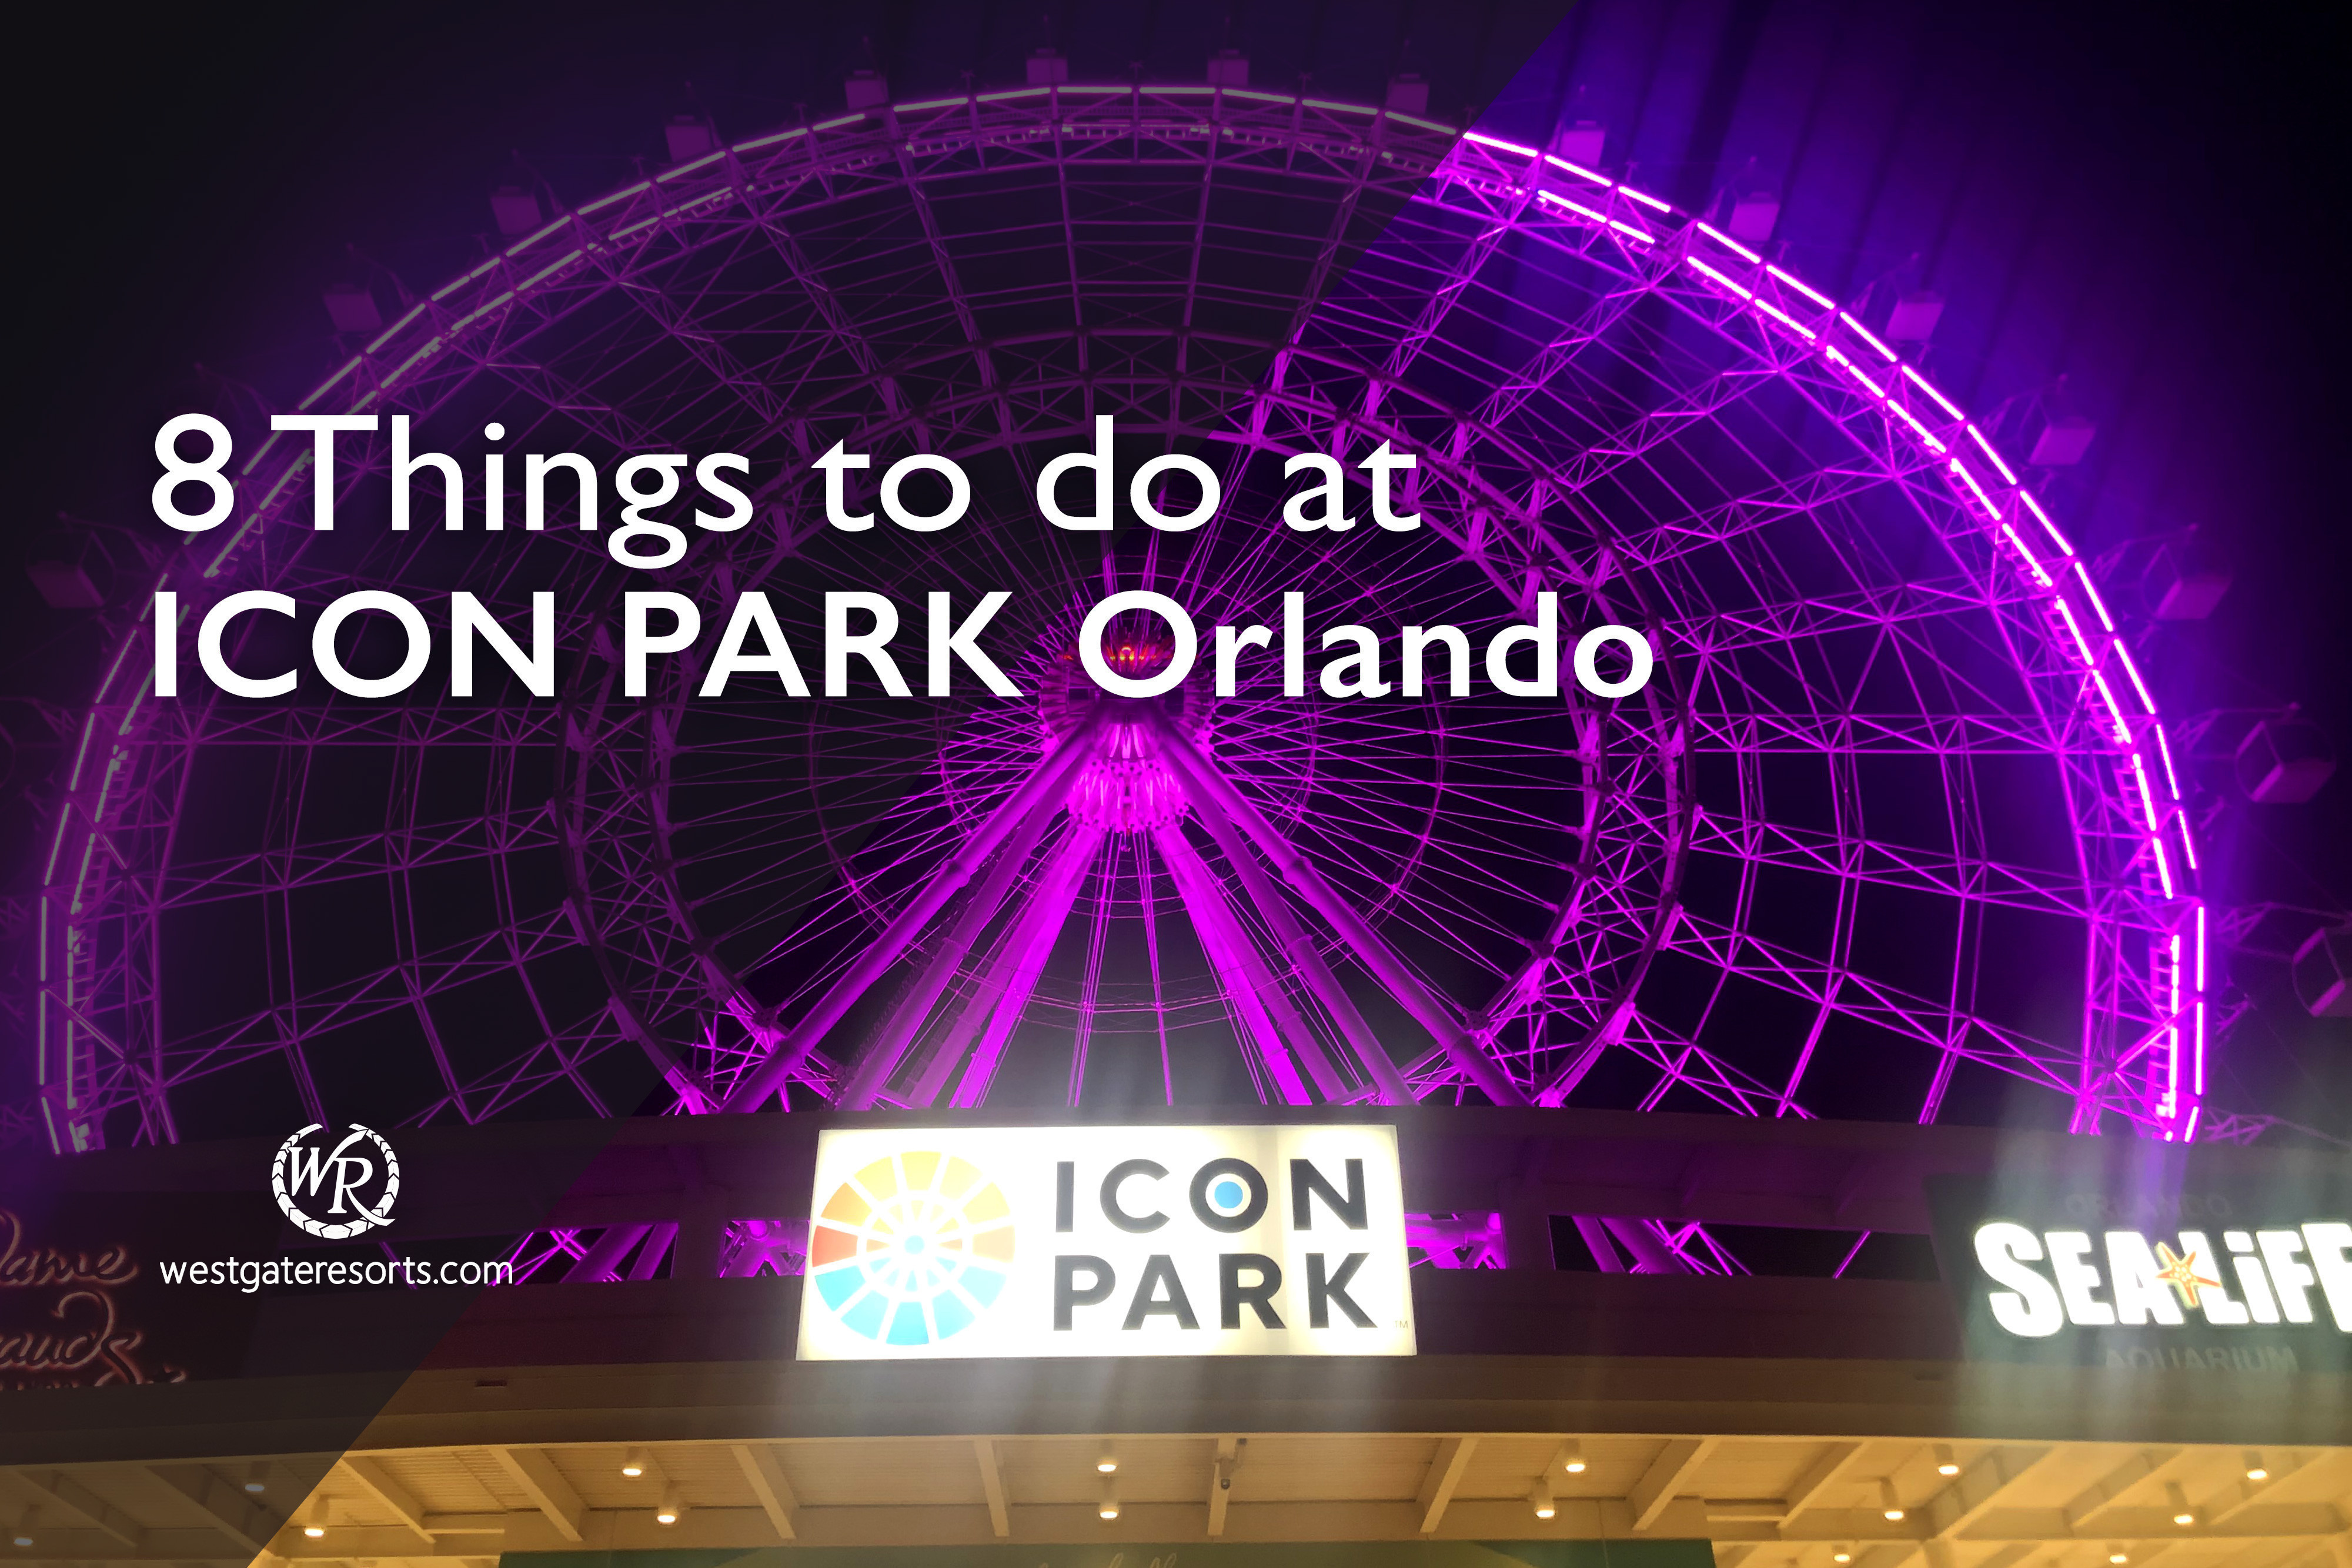 8 Things to do at Icon Park Orlando